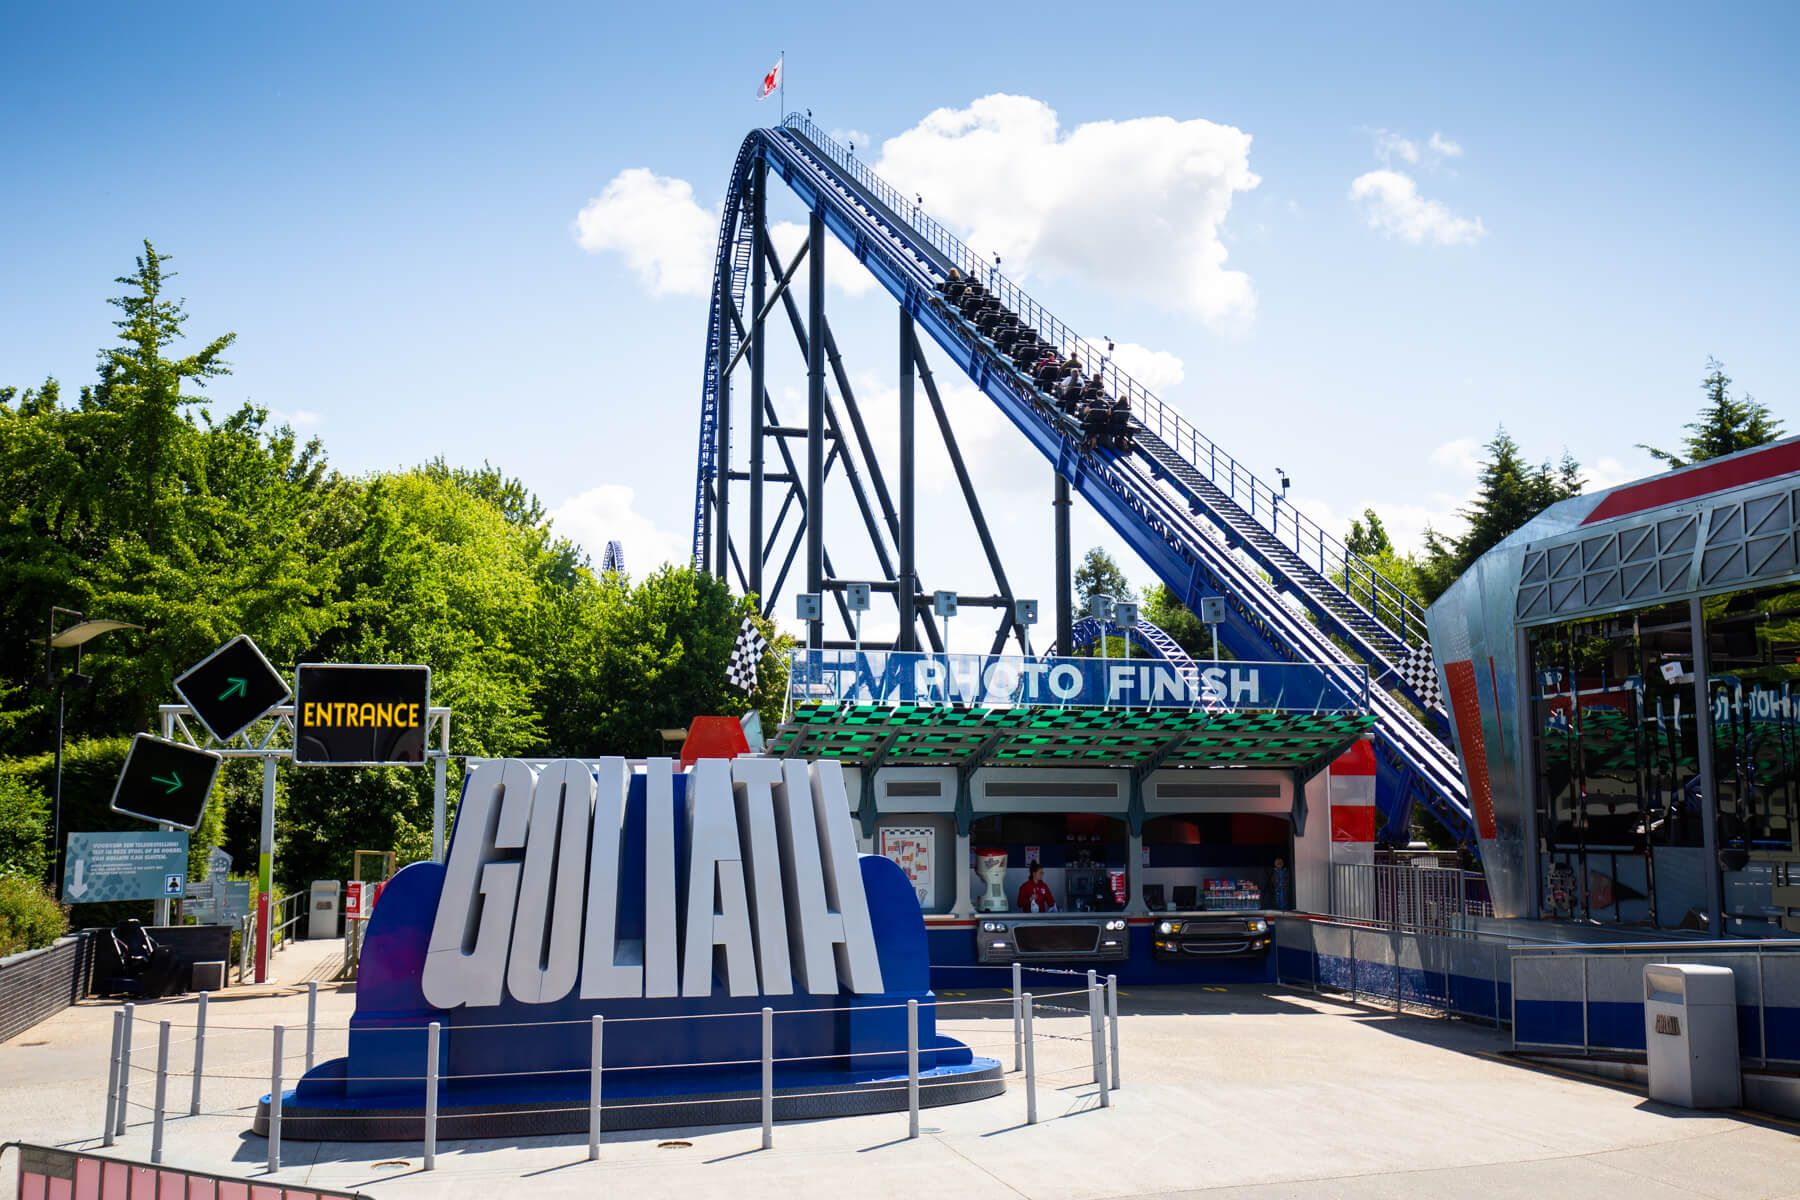 The entrance square of Goliath at Walibi Holland